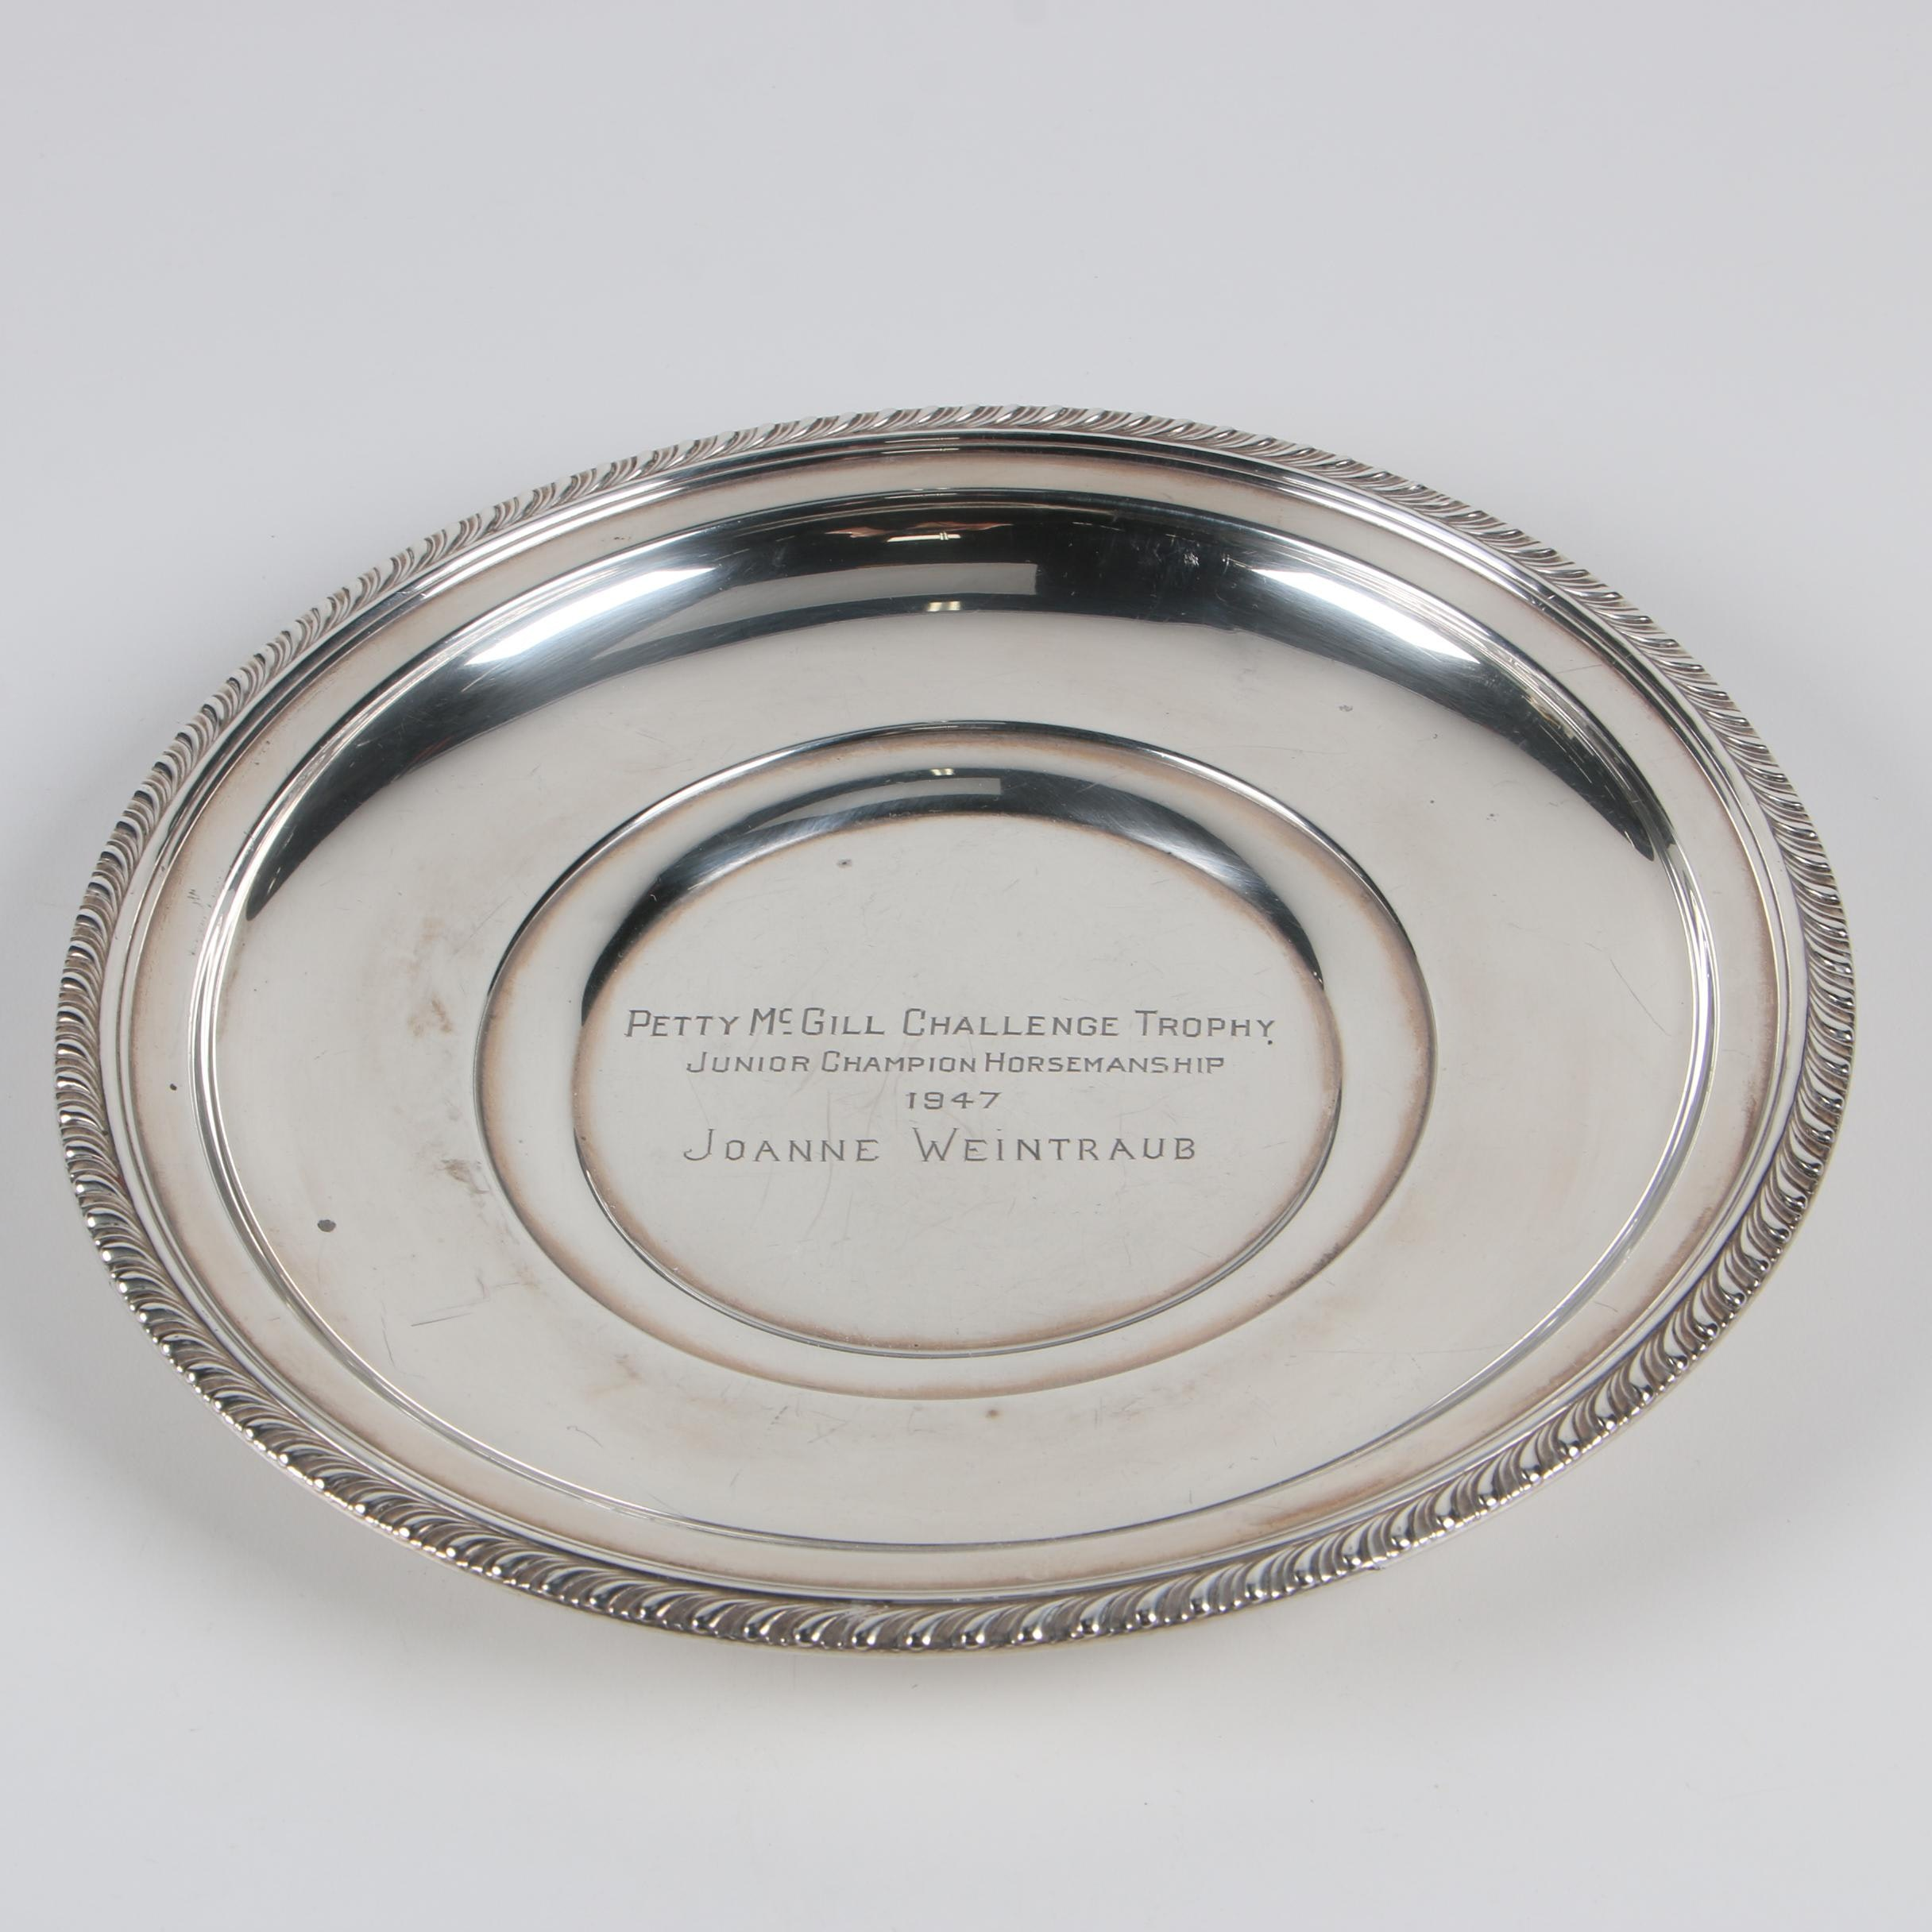 Manchester Silver Co. Sterling Petty McGill Challenge Trophy Plate, 1947